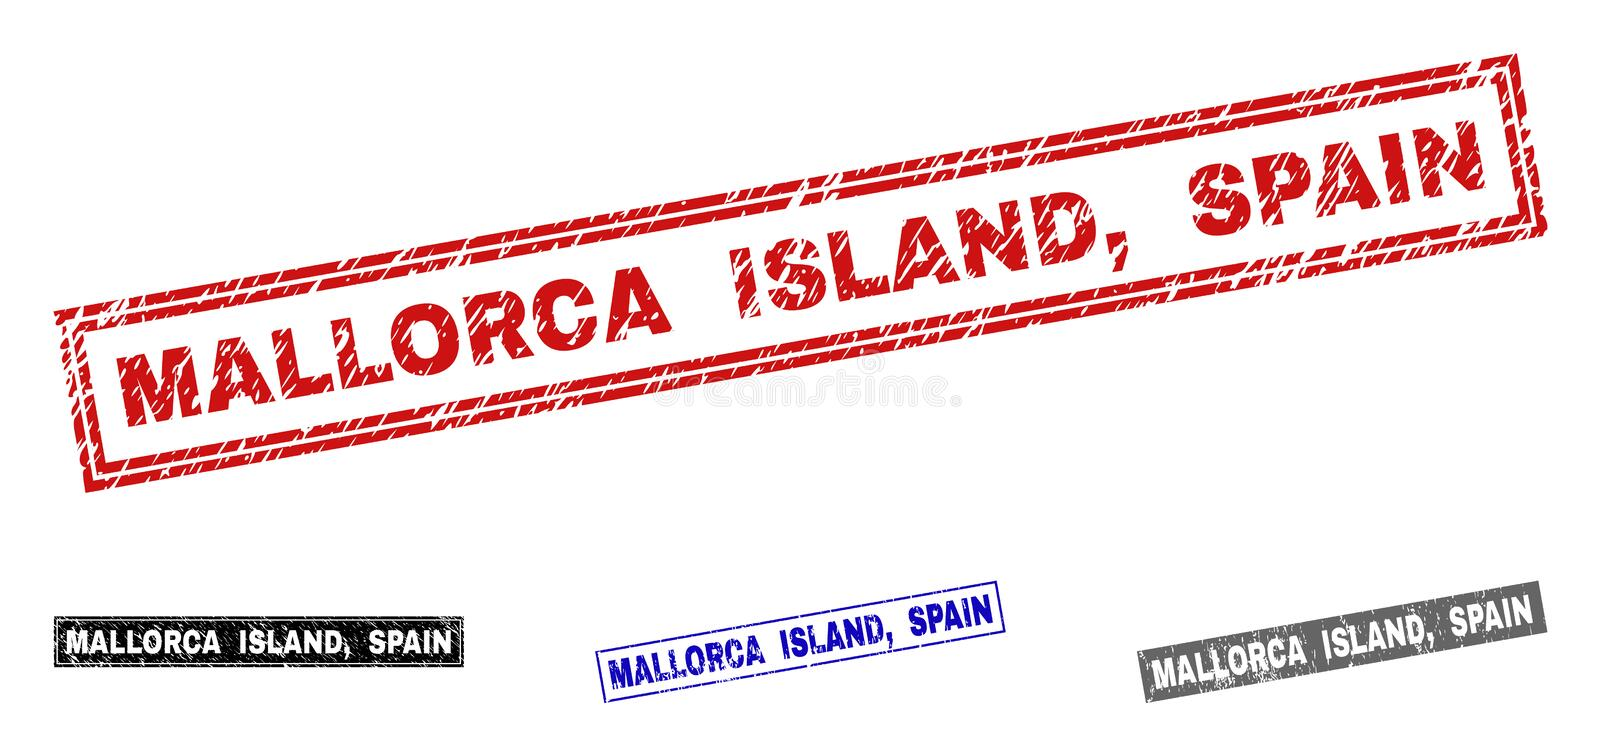 Grunge MALLORCA ISLAND, SPAIN Scratched Rectangle Watermarks stock illustration